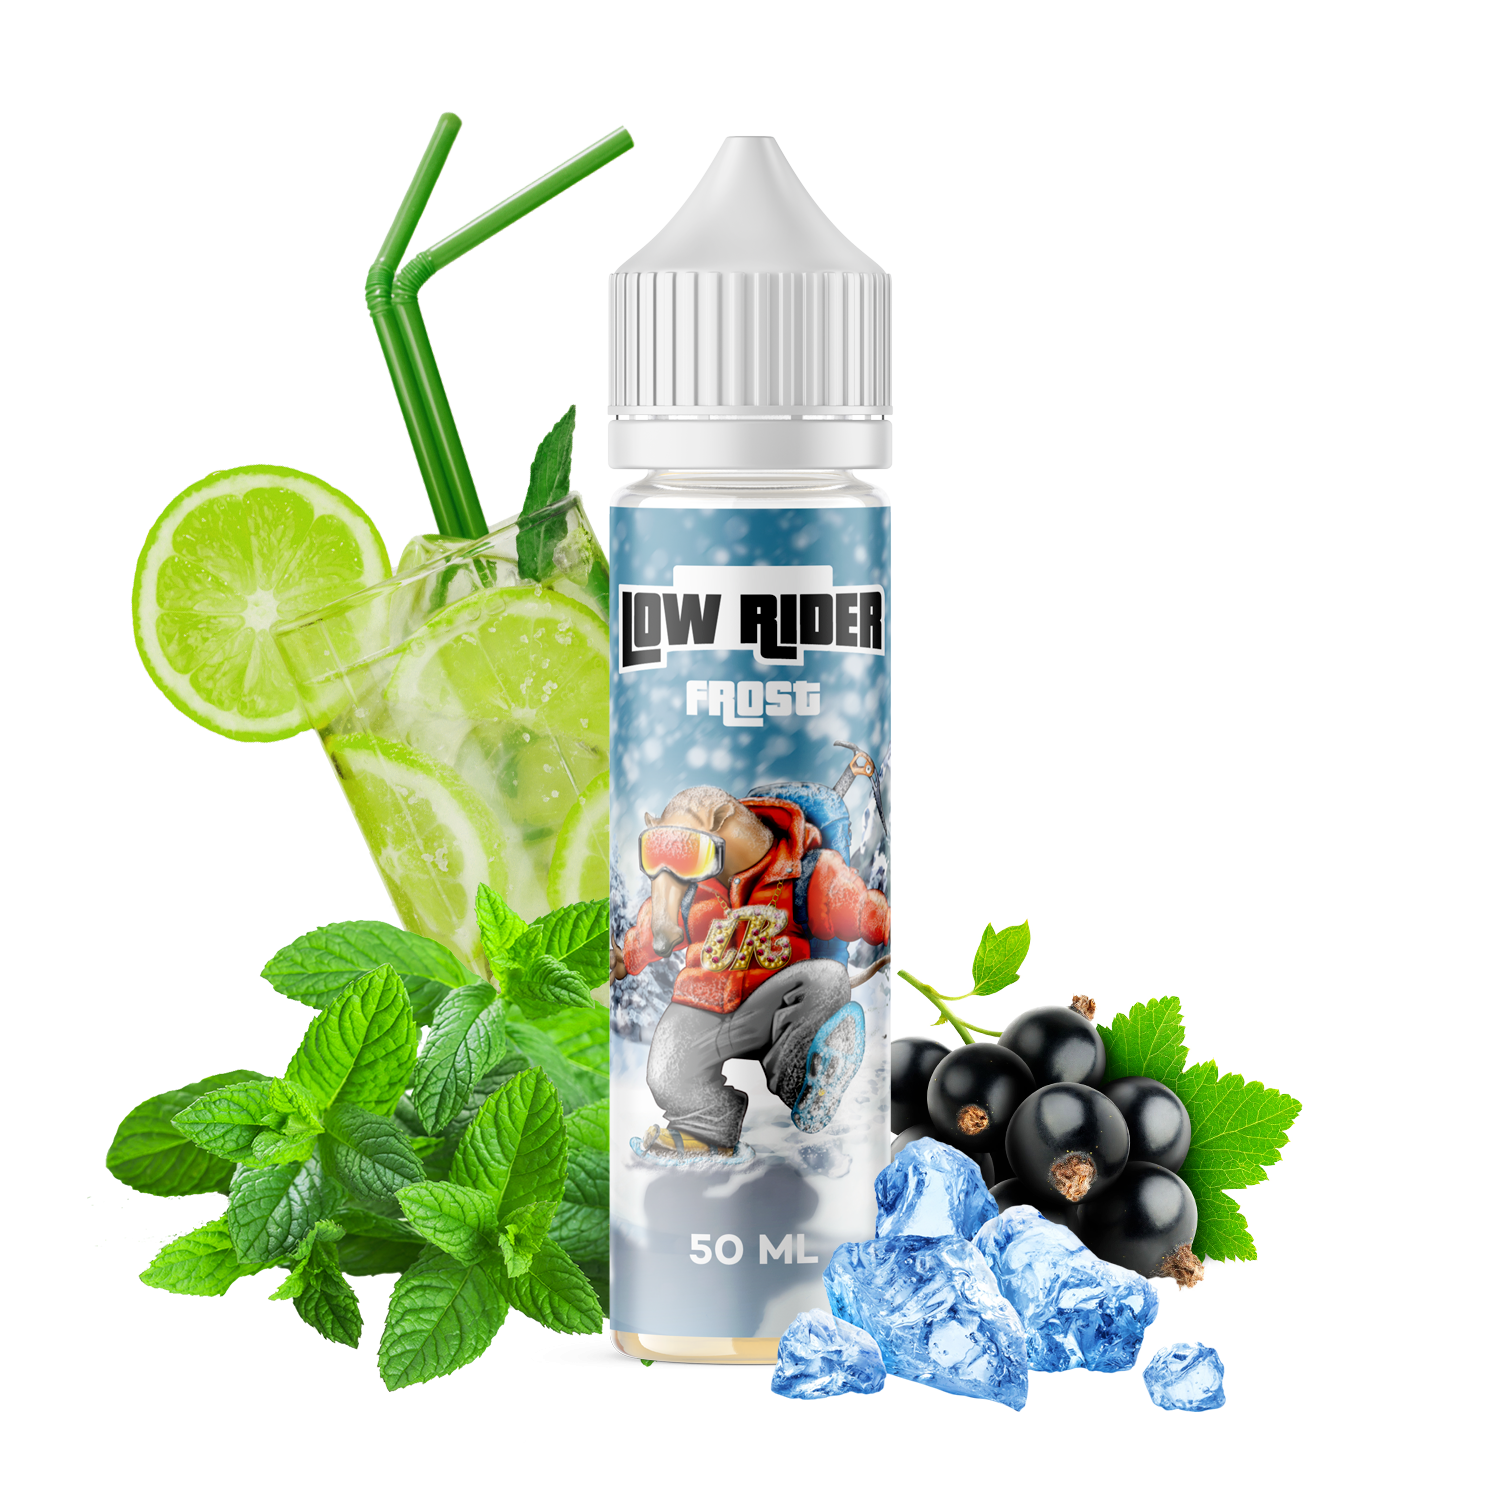 Low Rider Frost 50ml